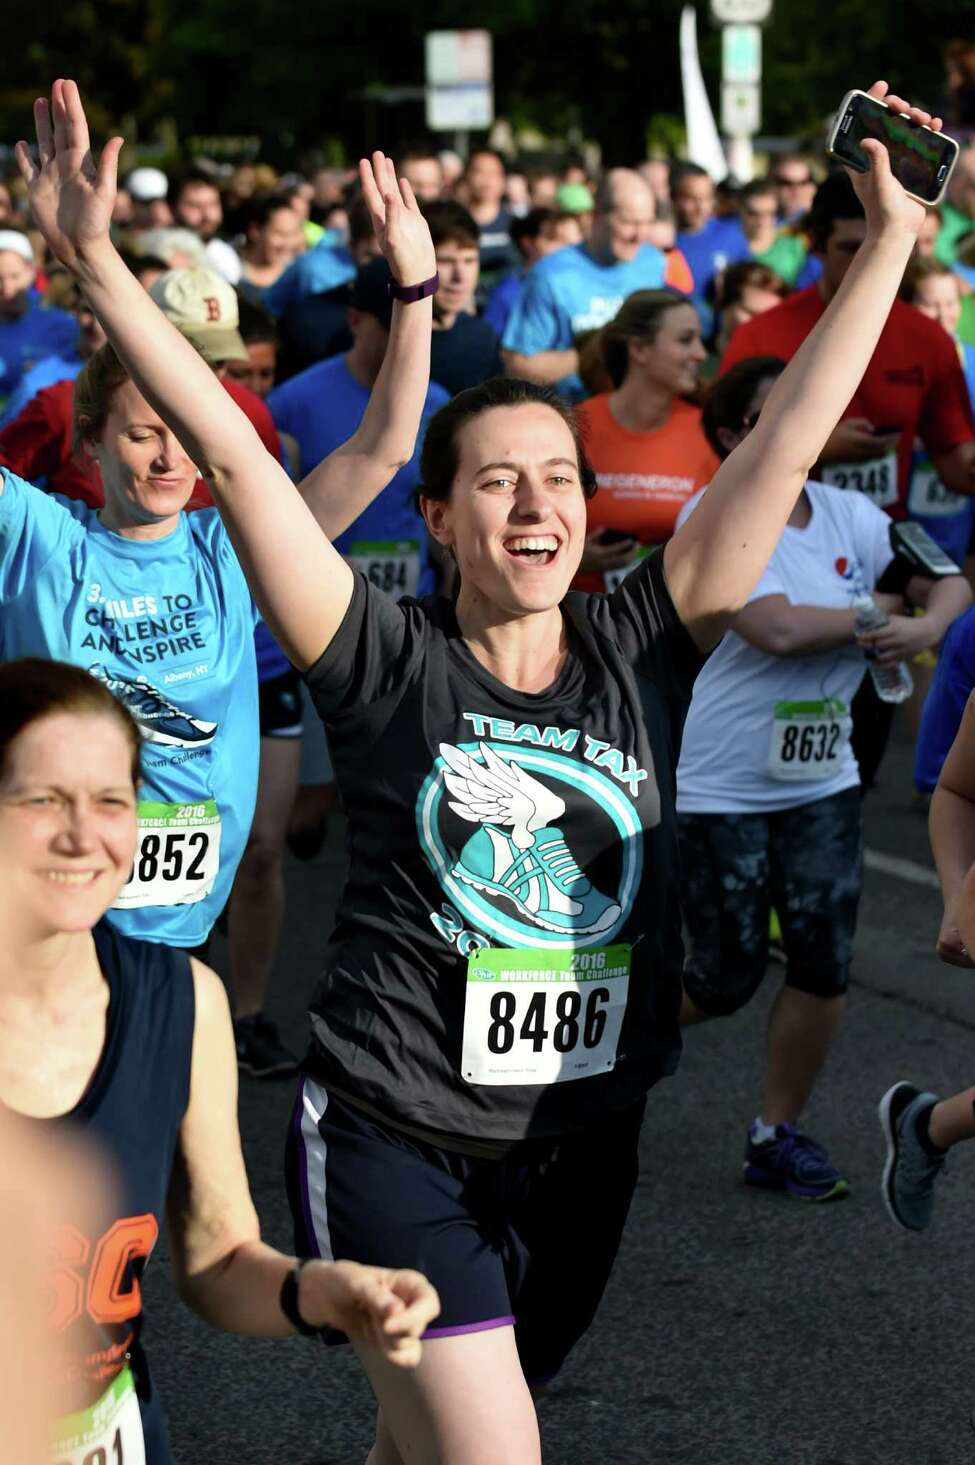 A runner with Team Tax starts out with high spirits during the CDPHP Workforce Team Challenge on Thursday, May 19, 2016, in Albany, N.Y. (Cindy Schultz / Times Union)